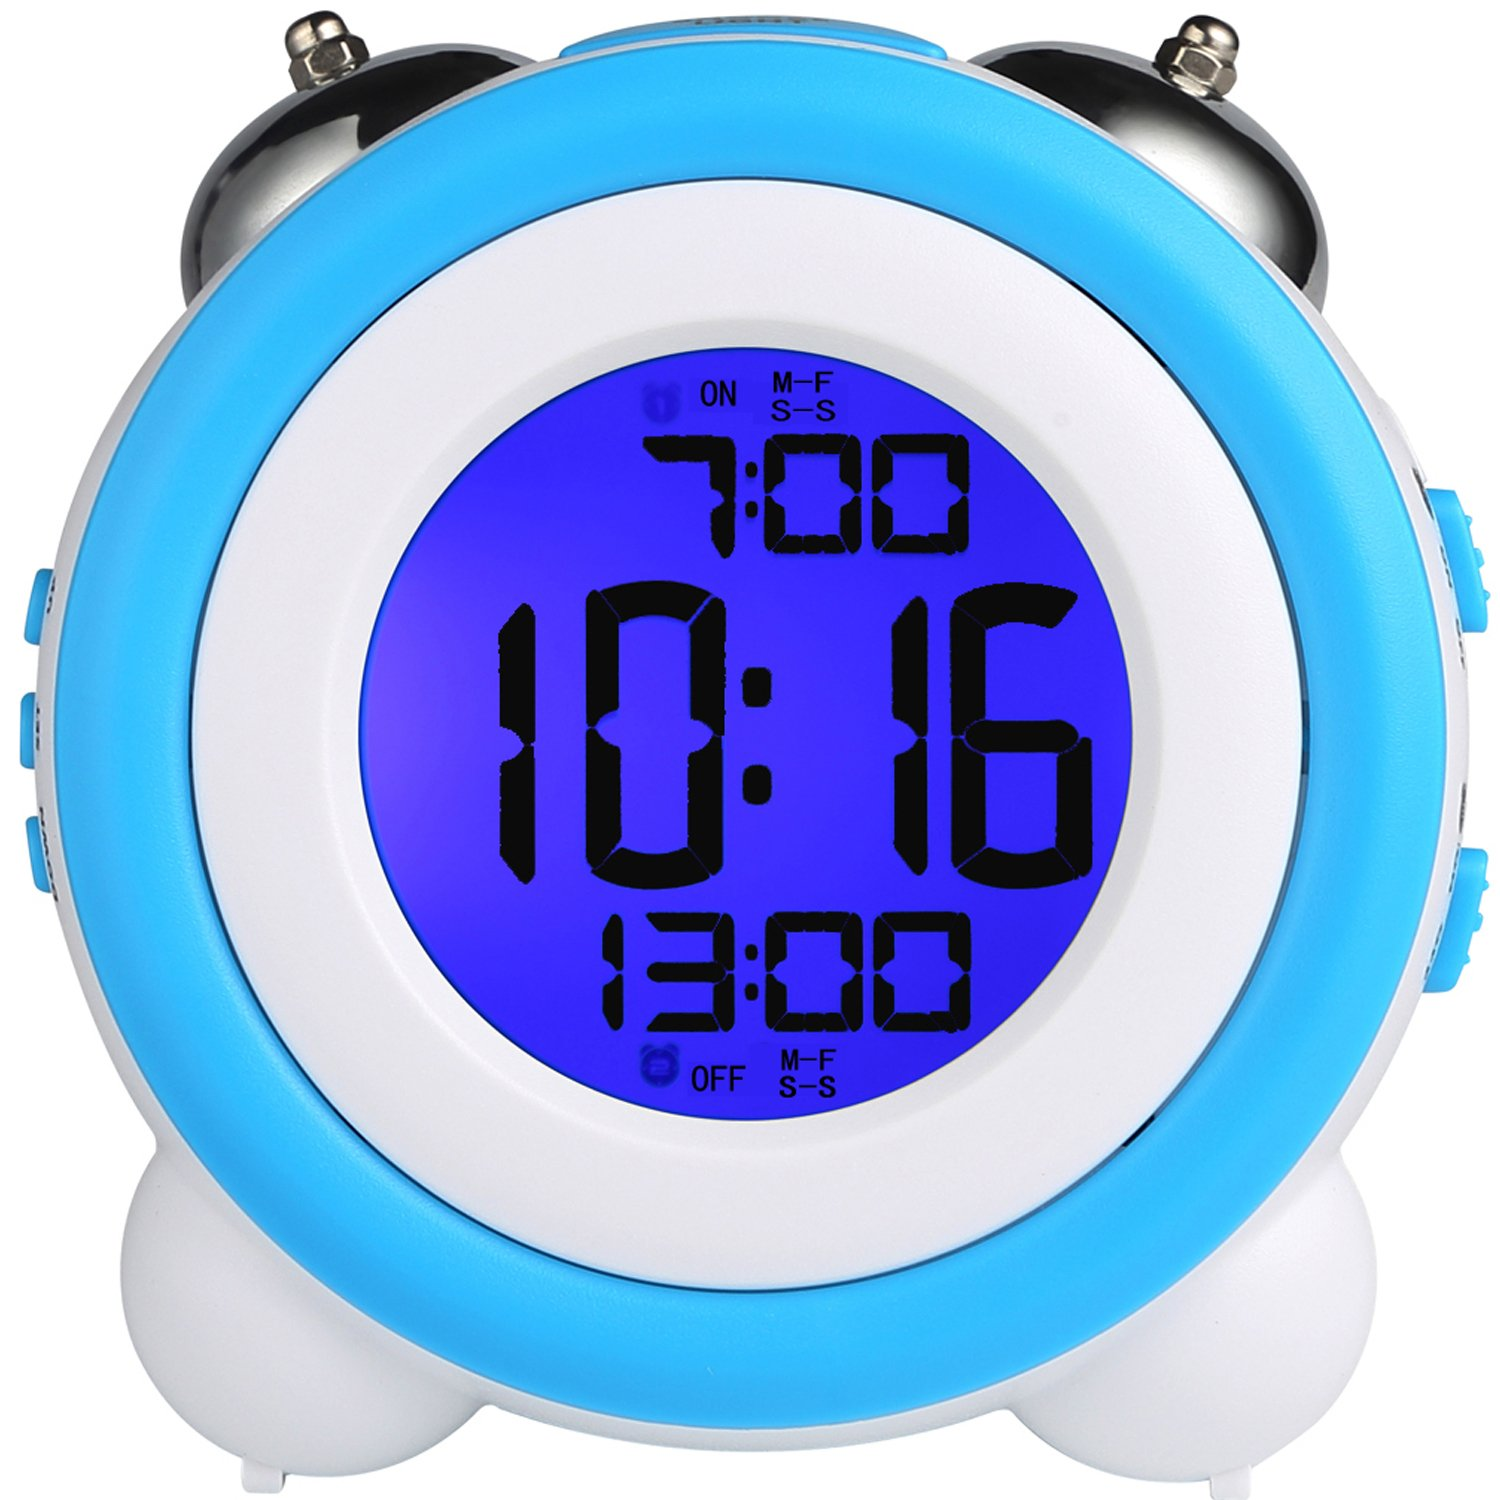 YOUOWO Digital Dual Alarm Clock Loud Alarm Clock Twin Bell Kids Small Clock Large Display with Snooze and Night Light Battery Operated Easy to Set for Heavy Sleepers Bedrooms Desk Travel by YOUOWO